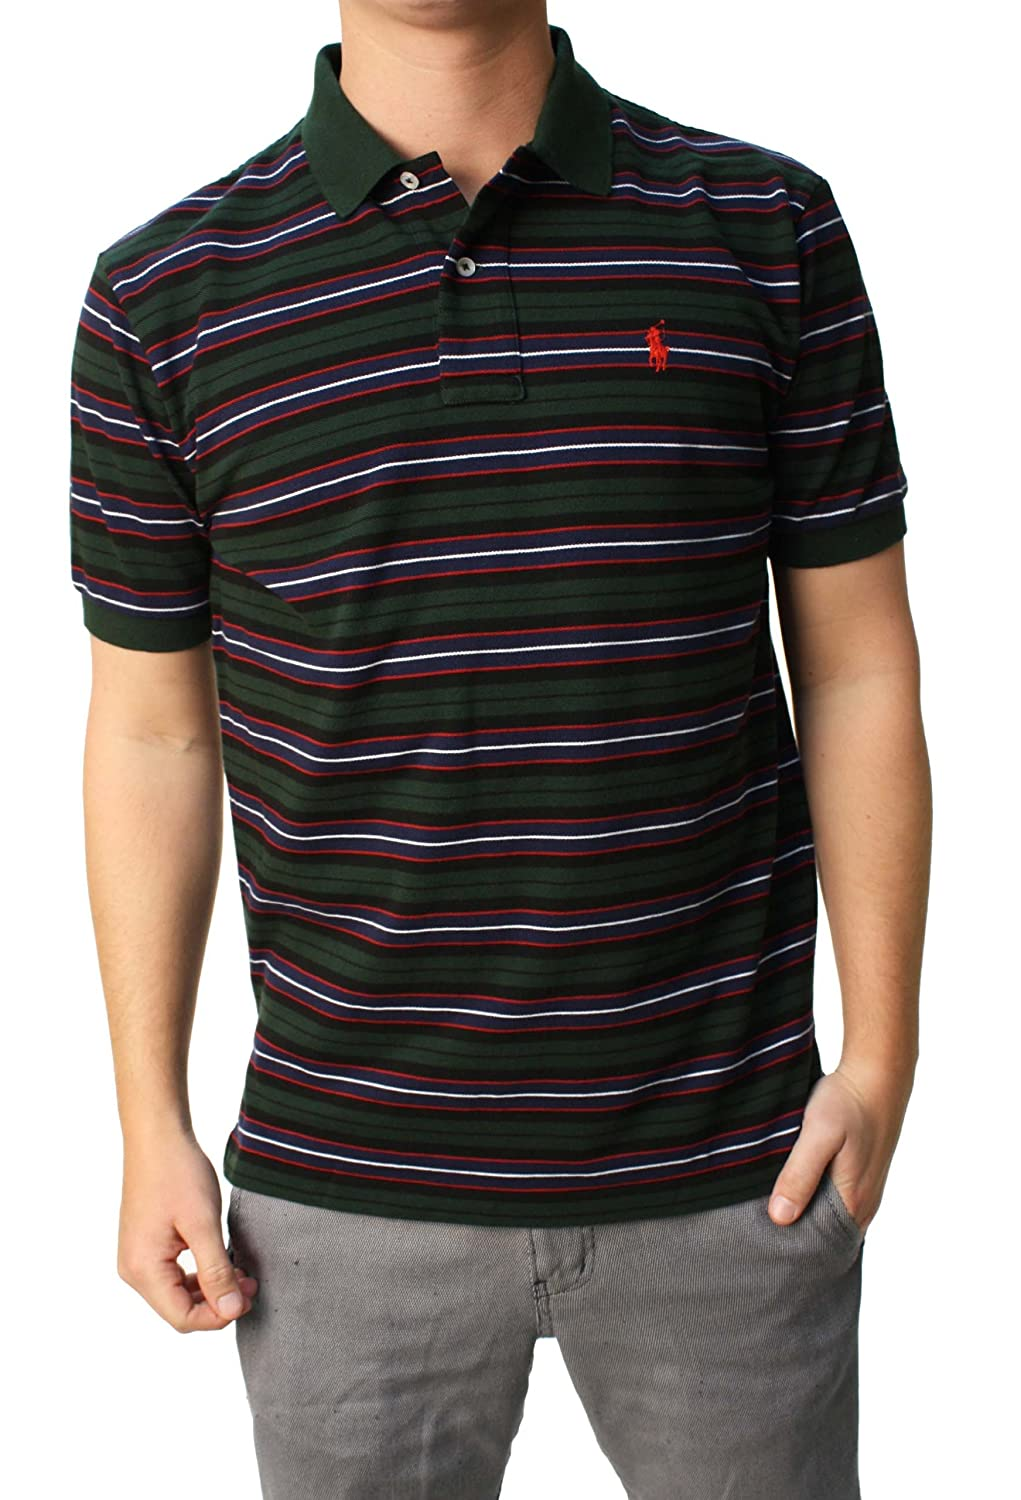 RALPH LAUREN Polo Mens Classic Fit Mesh Short Sleeve Shirt Green Navy Black  Red at Amazon Men s Clothing store  85b89961e